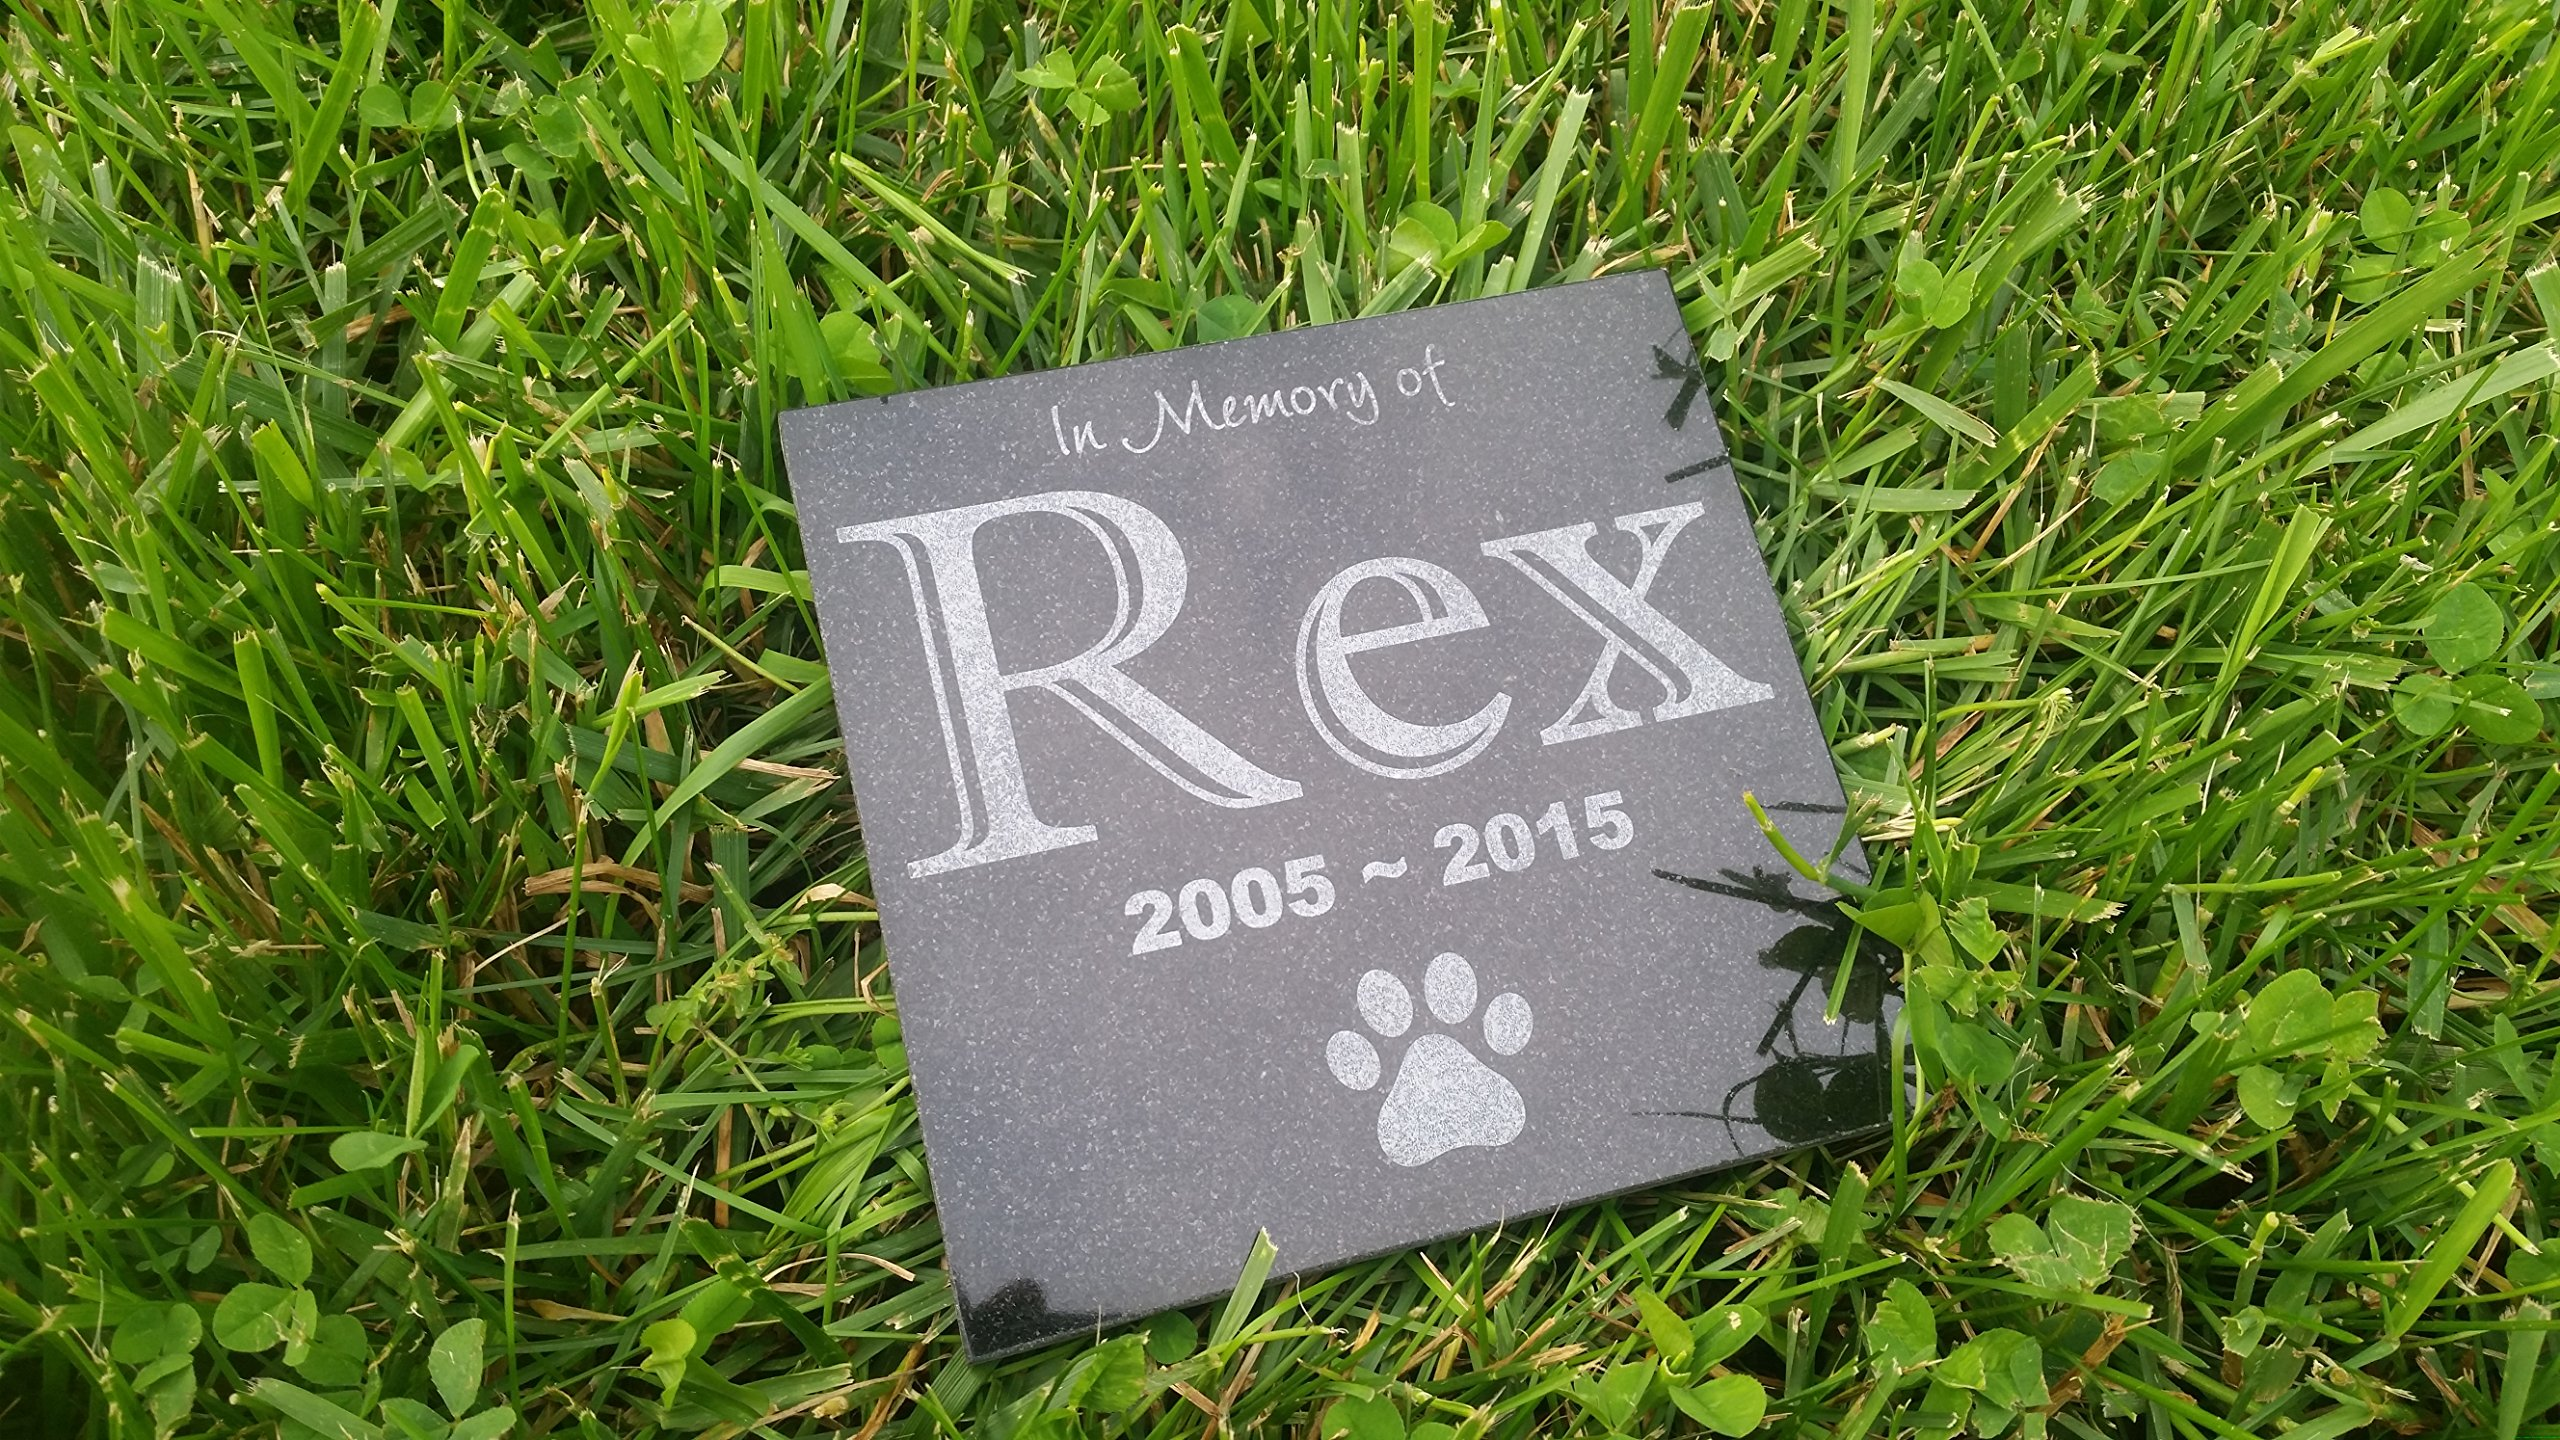 Personalised Pet Stone Memorial Marker Granite Name Marker Dog Cat Horse Bird Human 6'' X 6'' Custom Design Personalizd Akita Poodle Bulldog